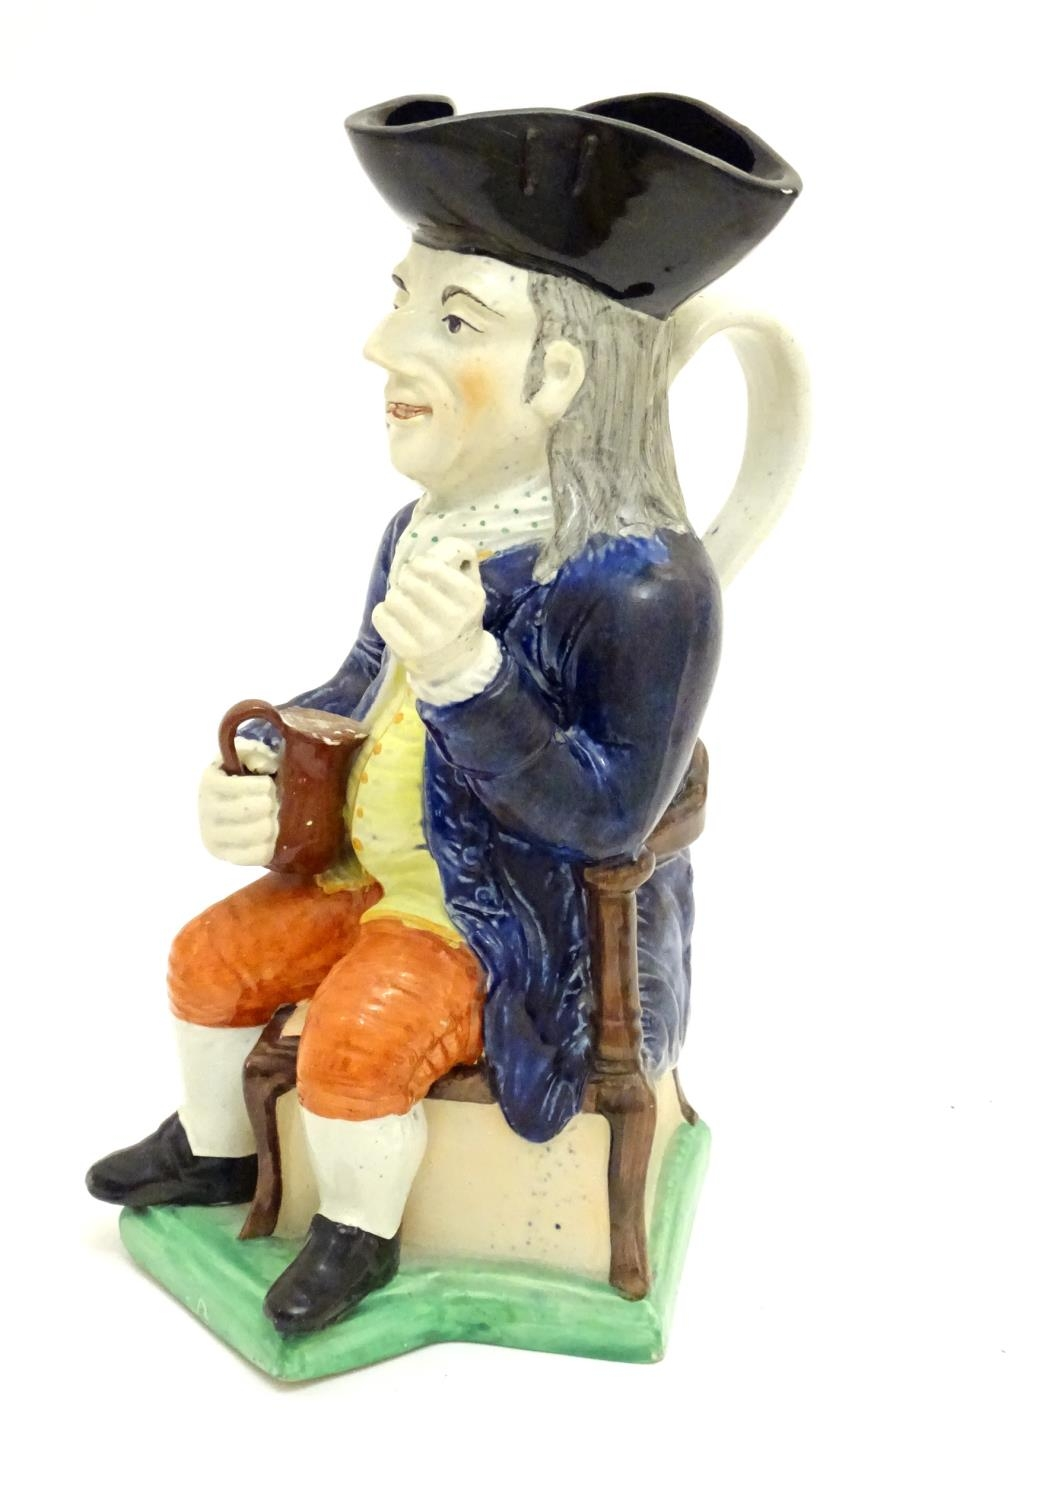 A large Toby jug formed as a seated gentleman in a tricorn hat with a tankard of ale. Approx. 10 3/